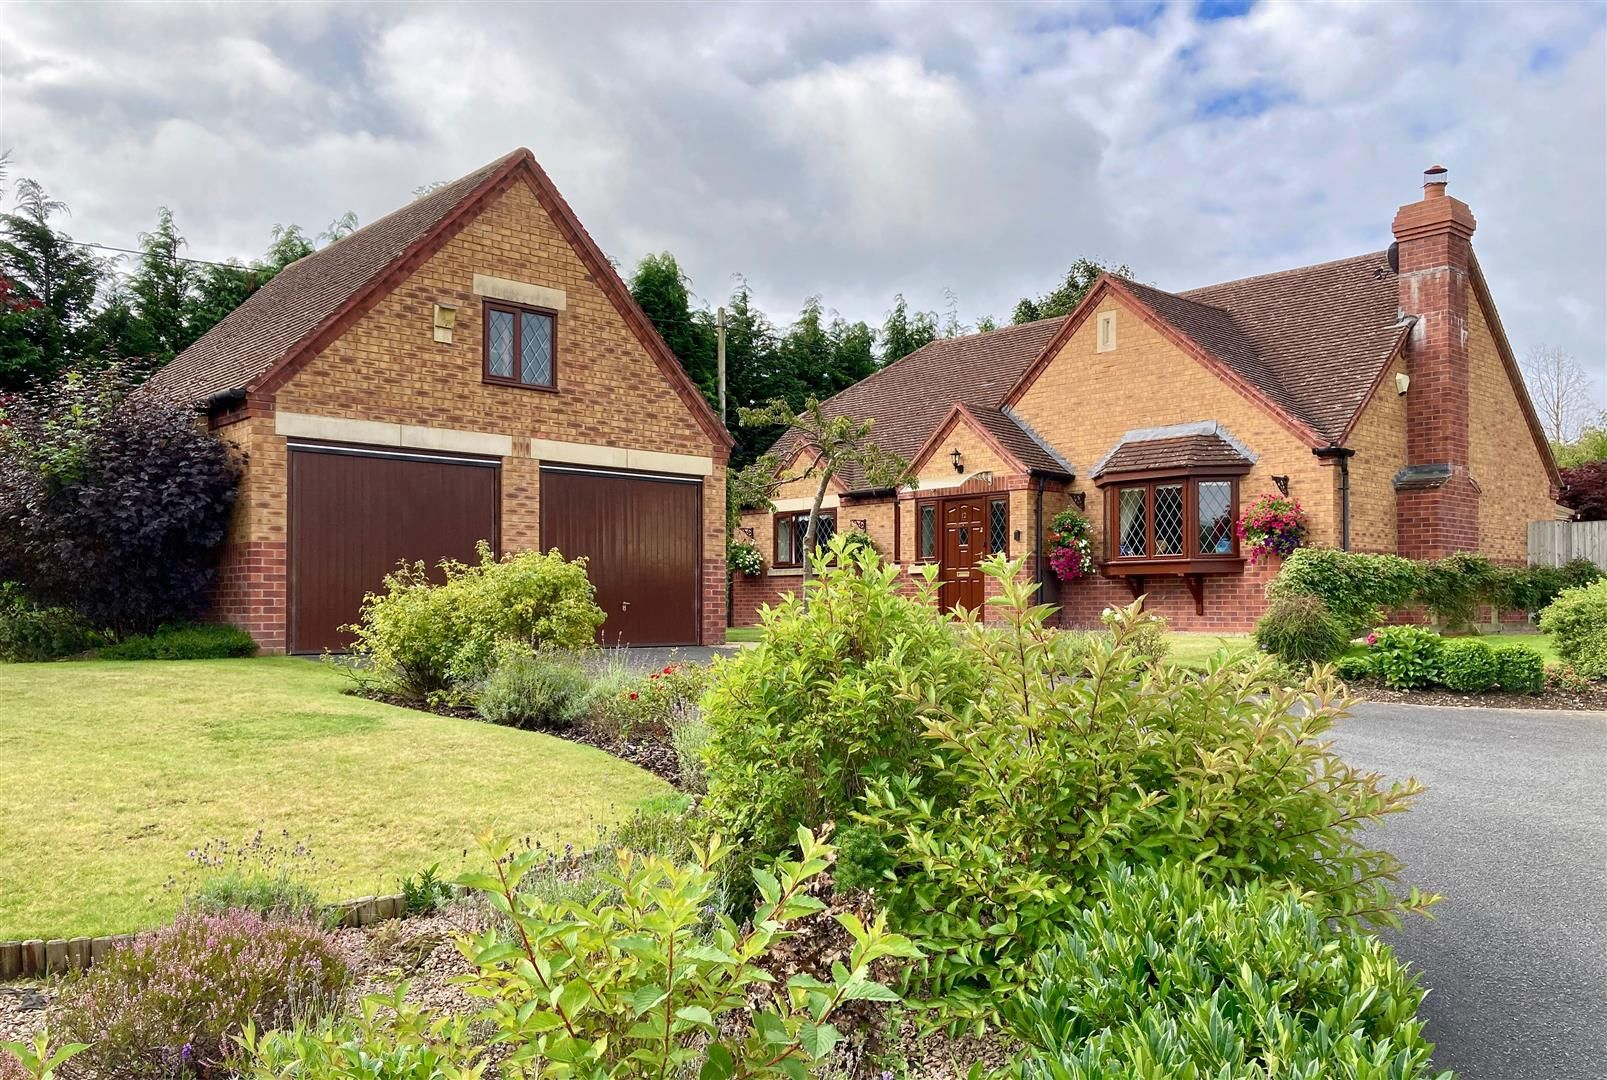 3 bed detached bungalow for sale in Norton, LD8